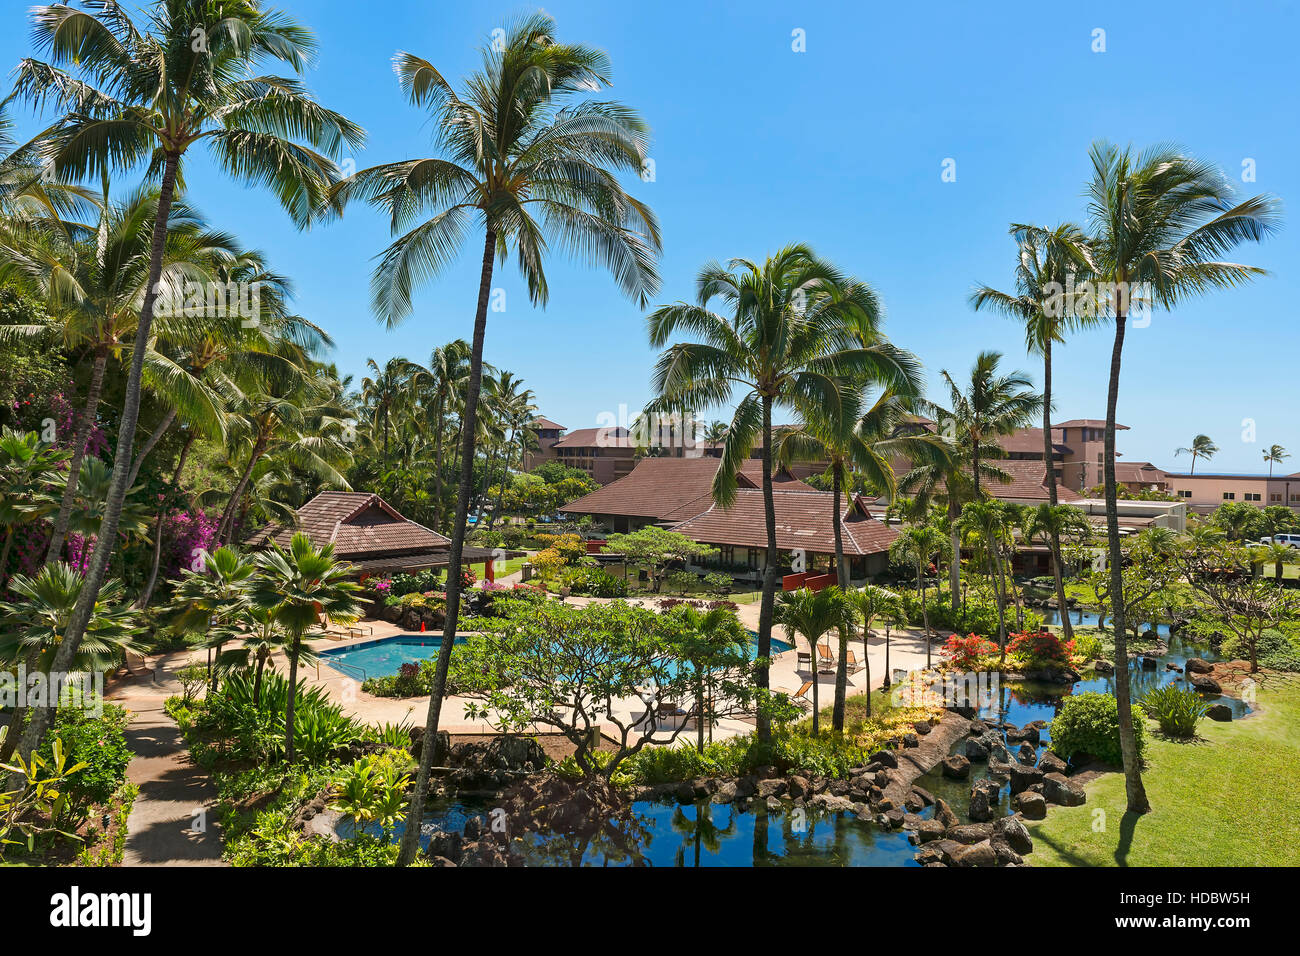 Hotel resort with pool and palm trees, Poipu, Koloa, Kaua'i, Hawaii, USA - Stock Image